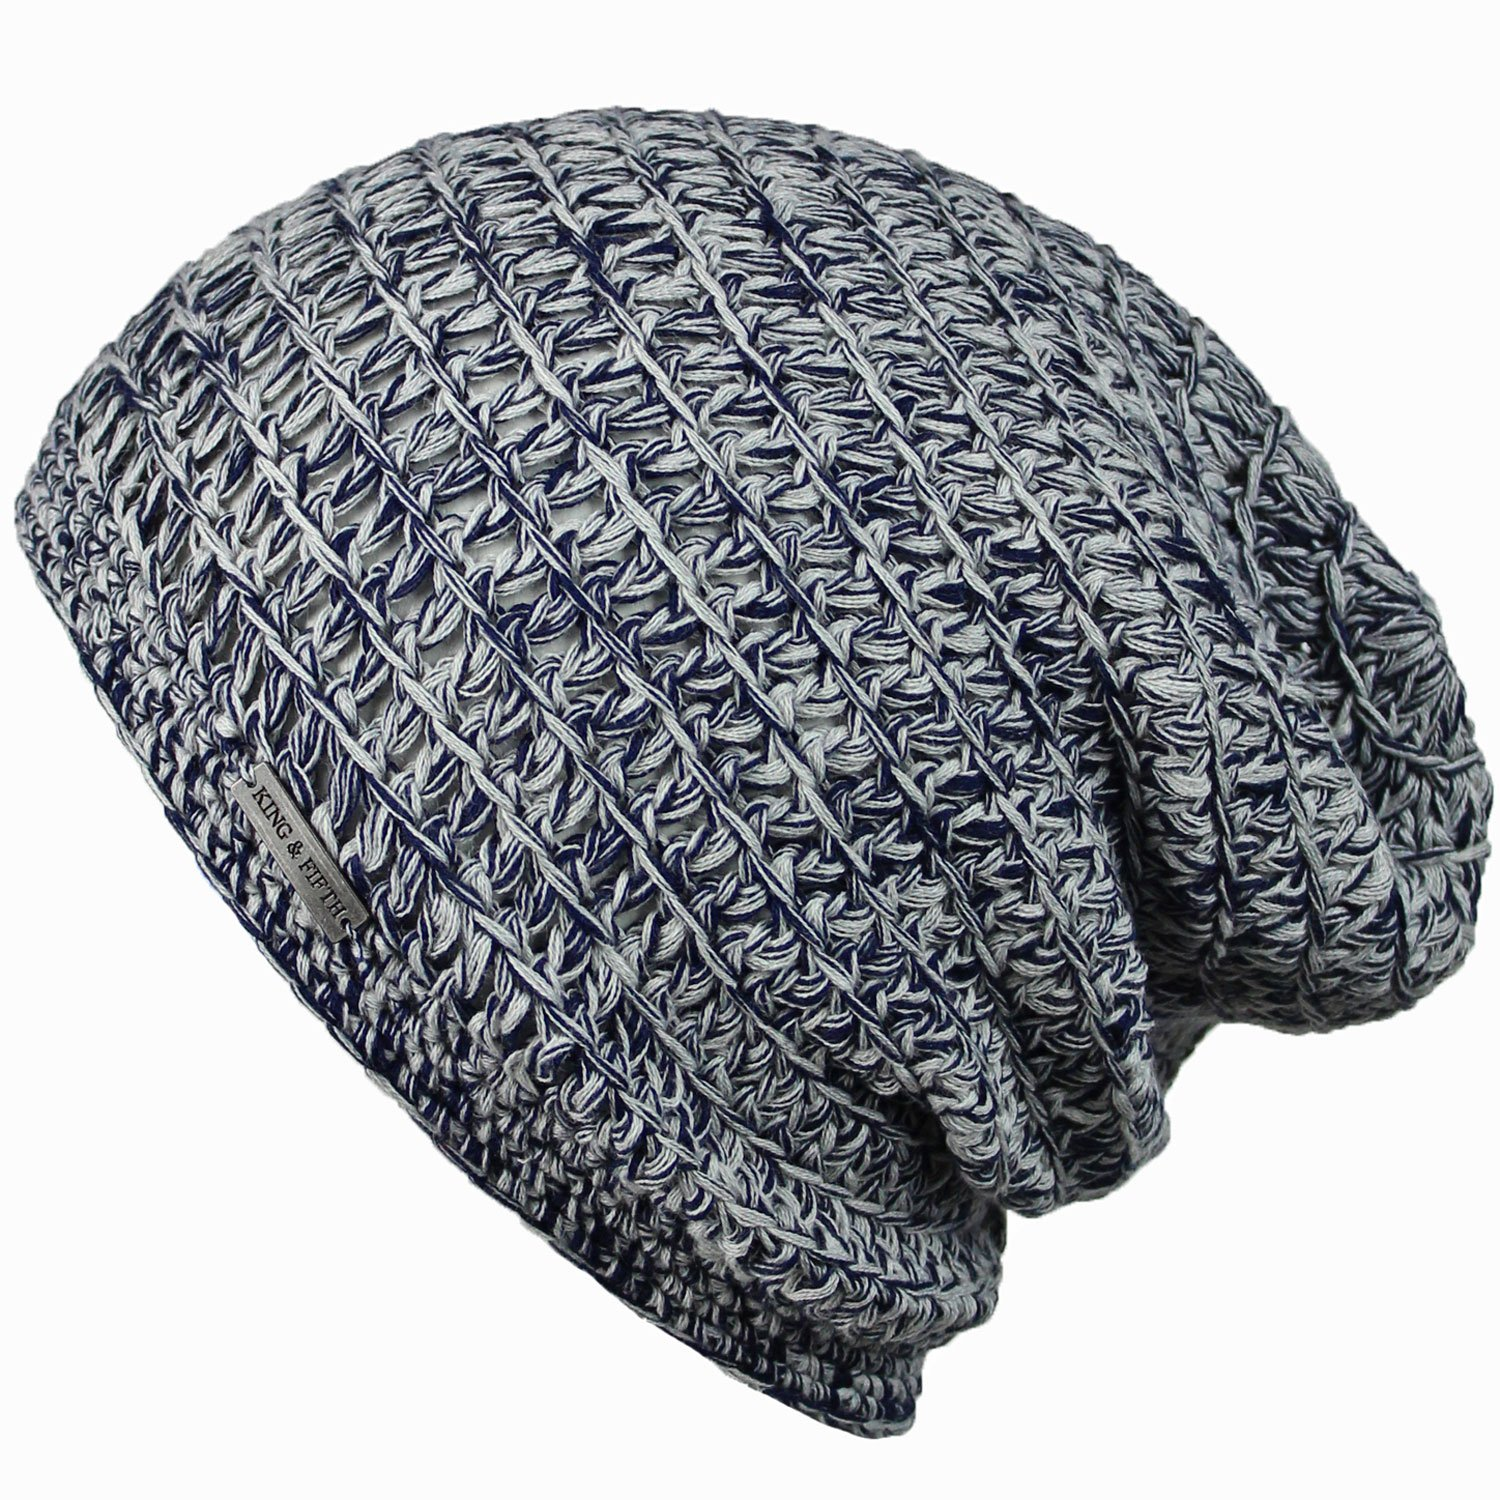 55eaa80d285 ... Beeskie SU  new style 86dac 9373a Large Slouchy Summer Beanie - This  over-sized ...